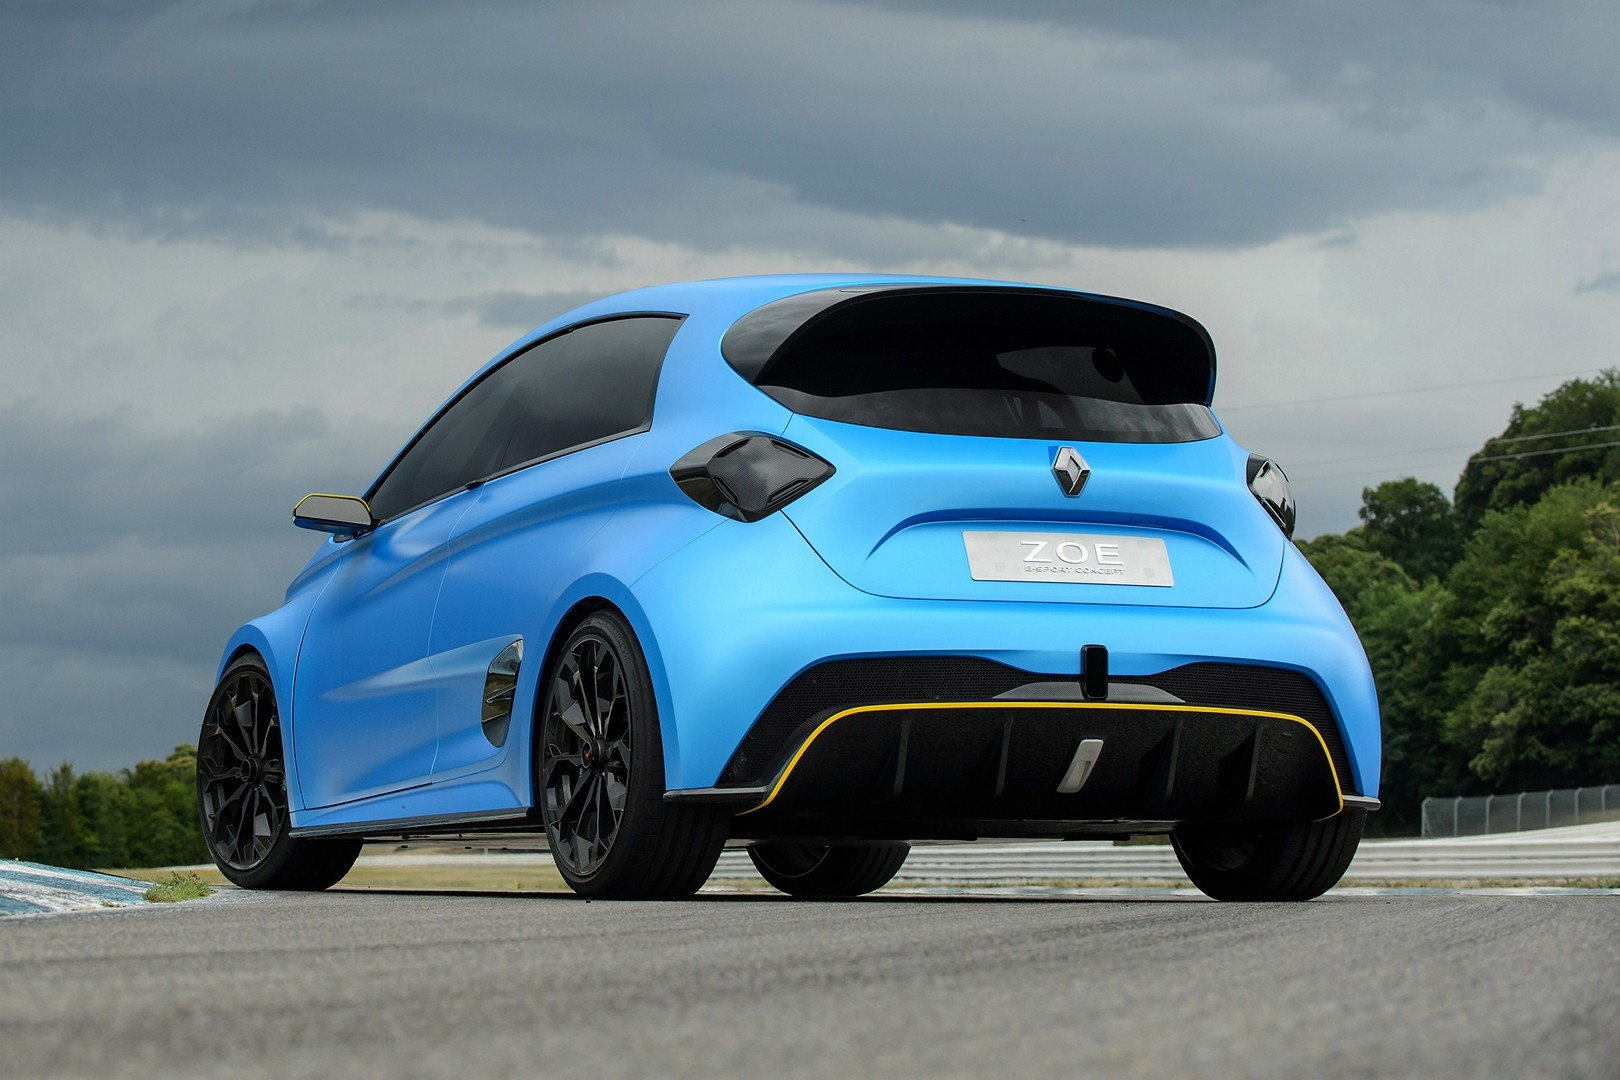 2017 - [Renault] ZOE e-Sport Concept - Page 3 Renault-zoe-e-sport-track-reviews-prove-it-s-not-just-a-concept_6